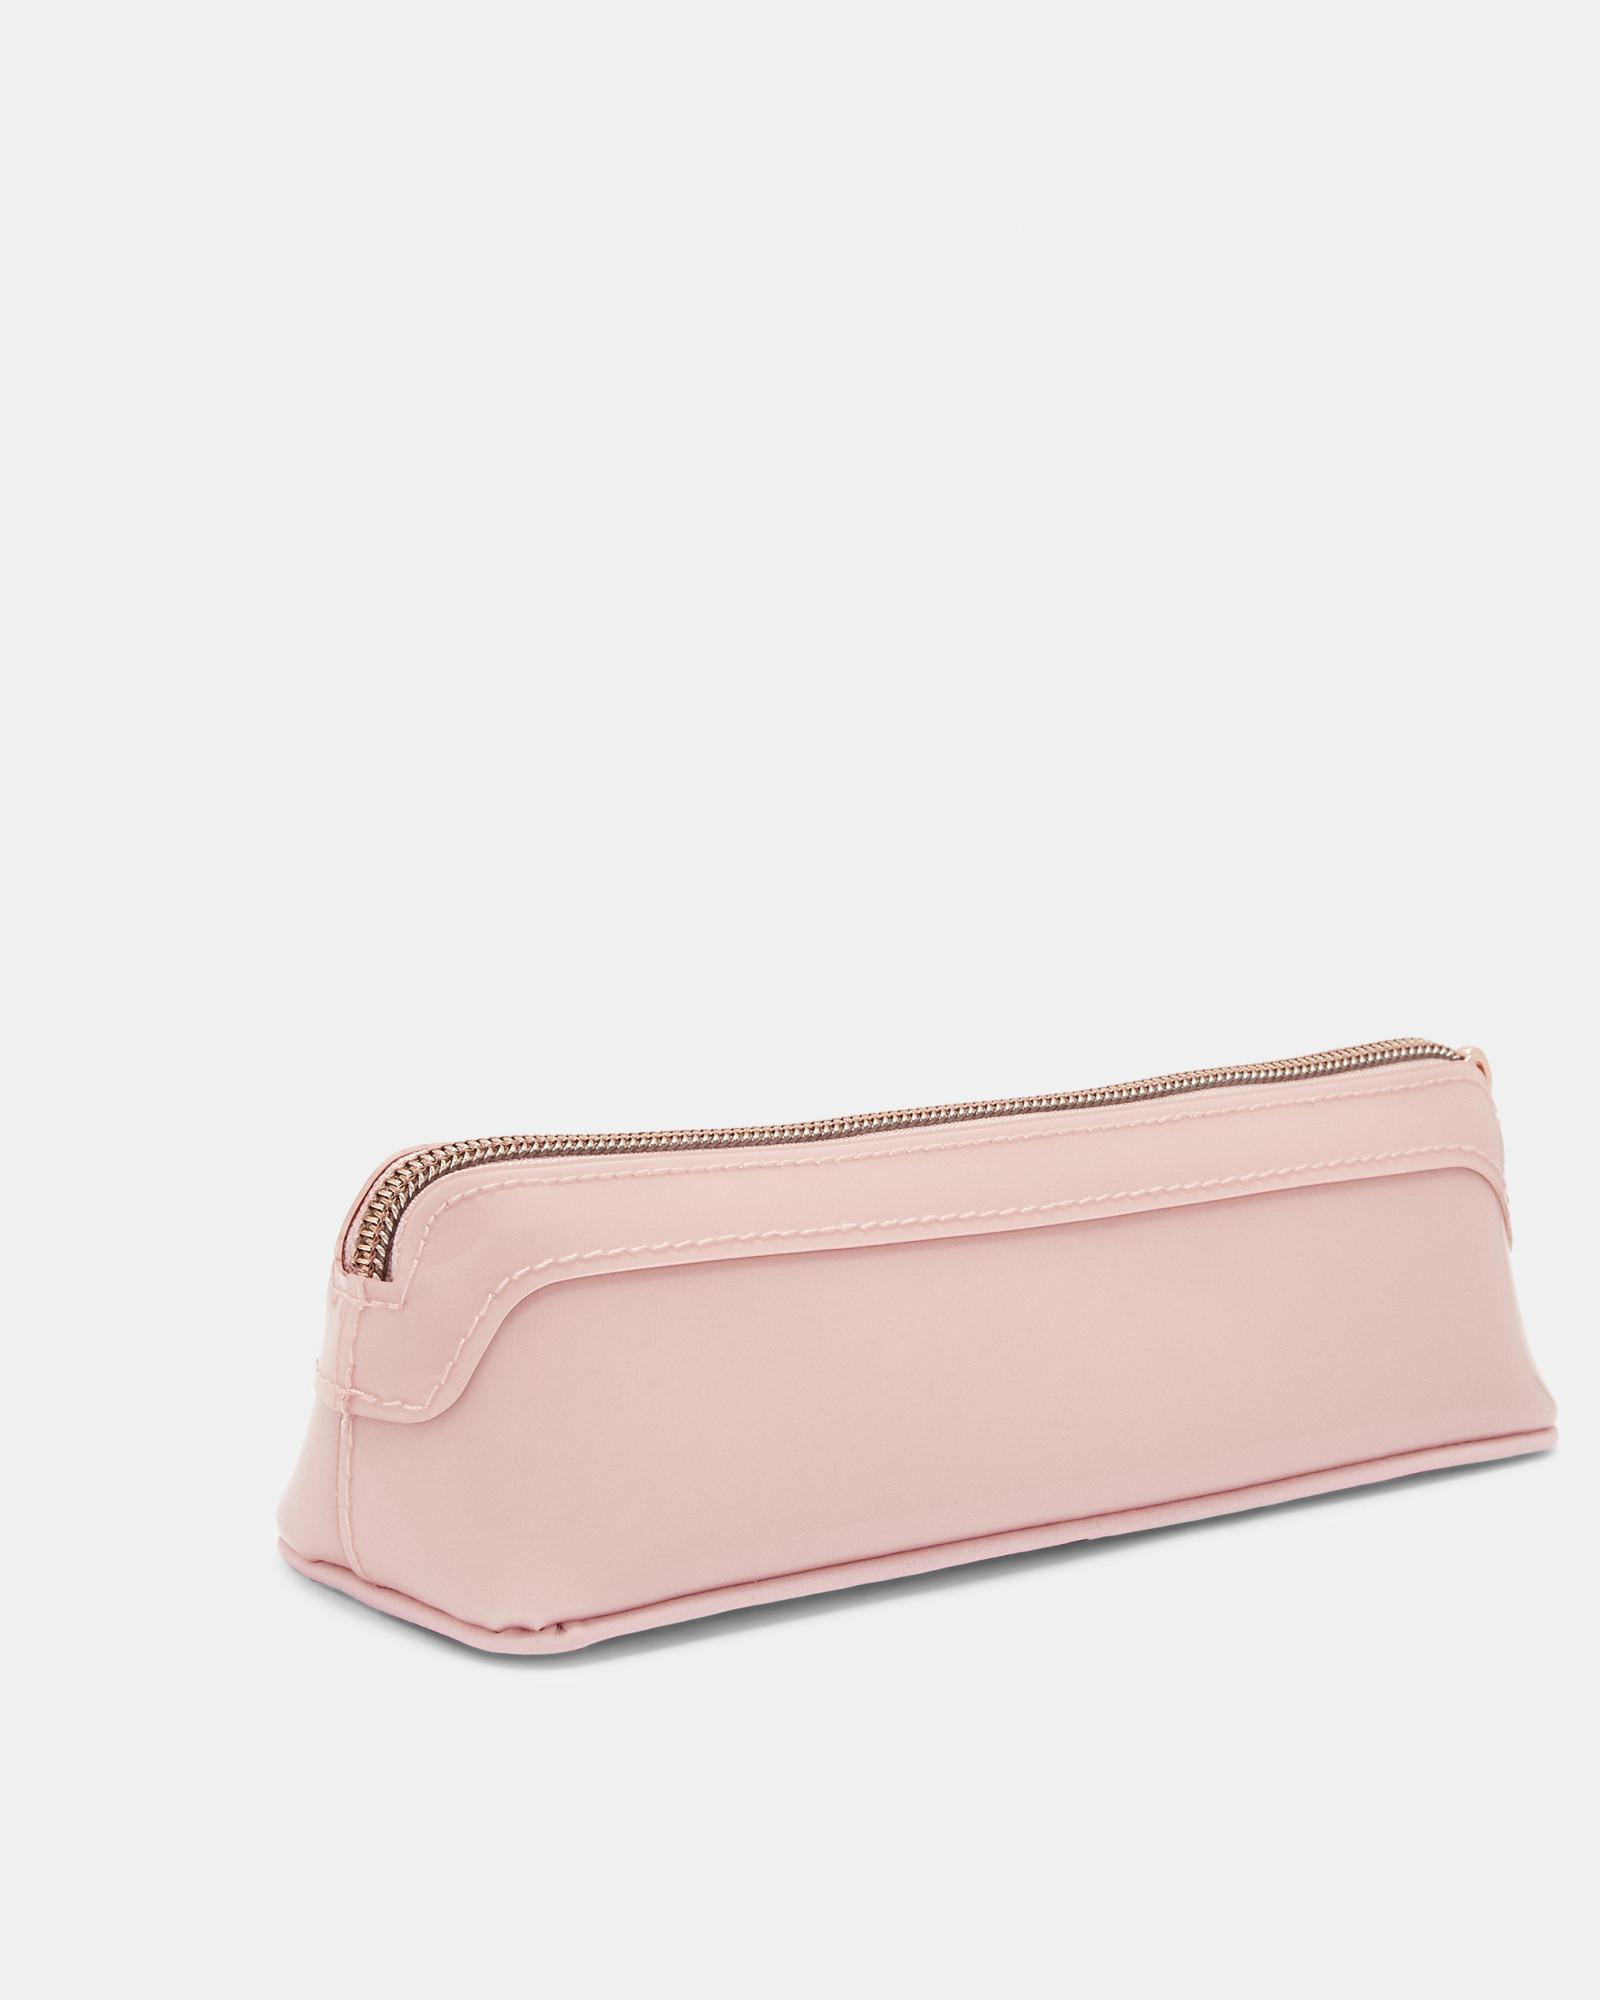 new style 45d62 61b80 Ted Baker Bow Detail Pencil Case in Pink - Lyst